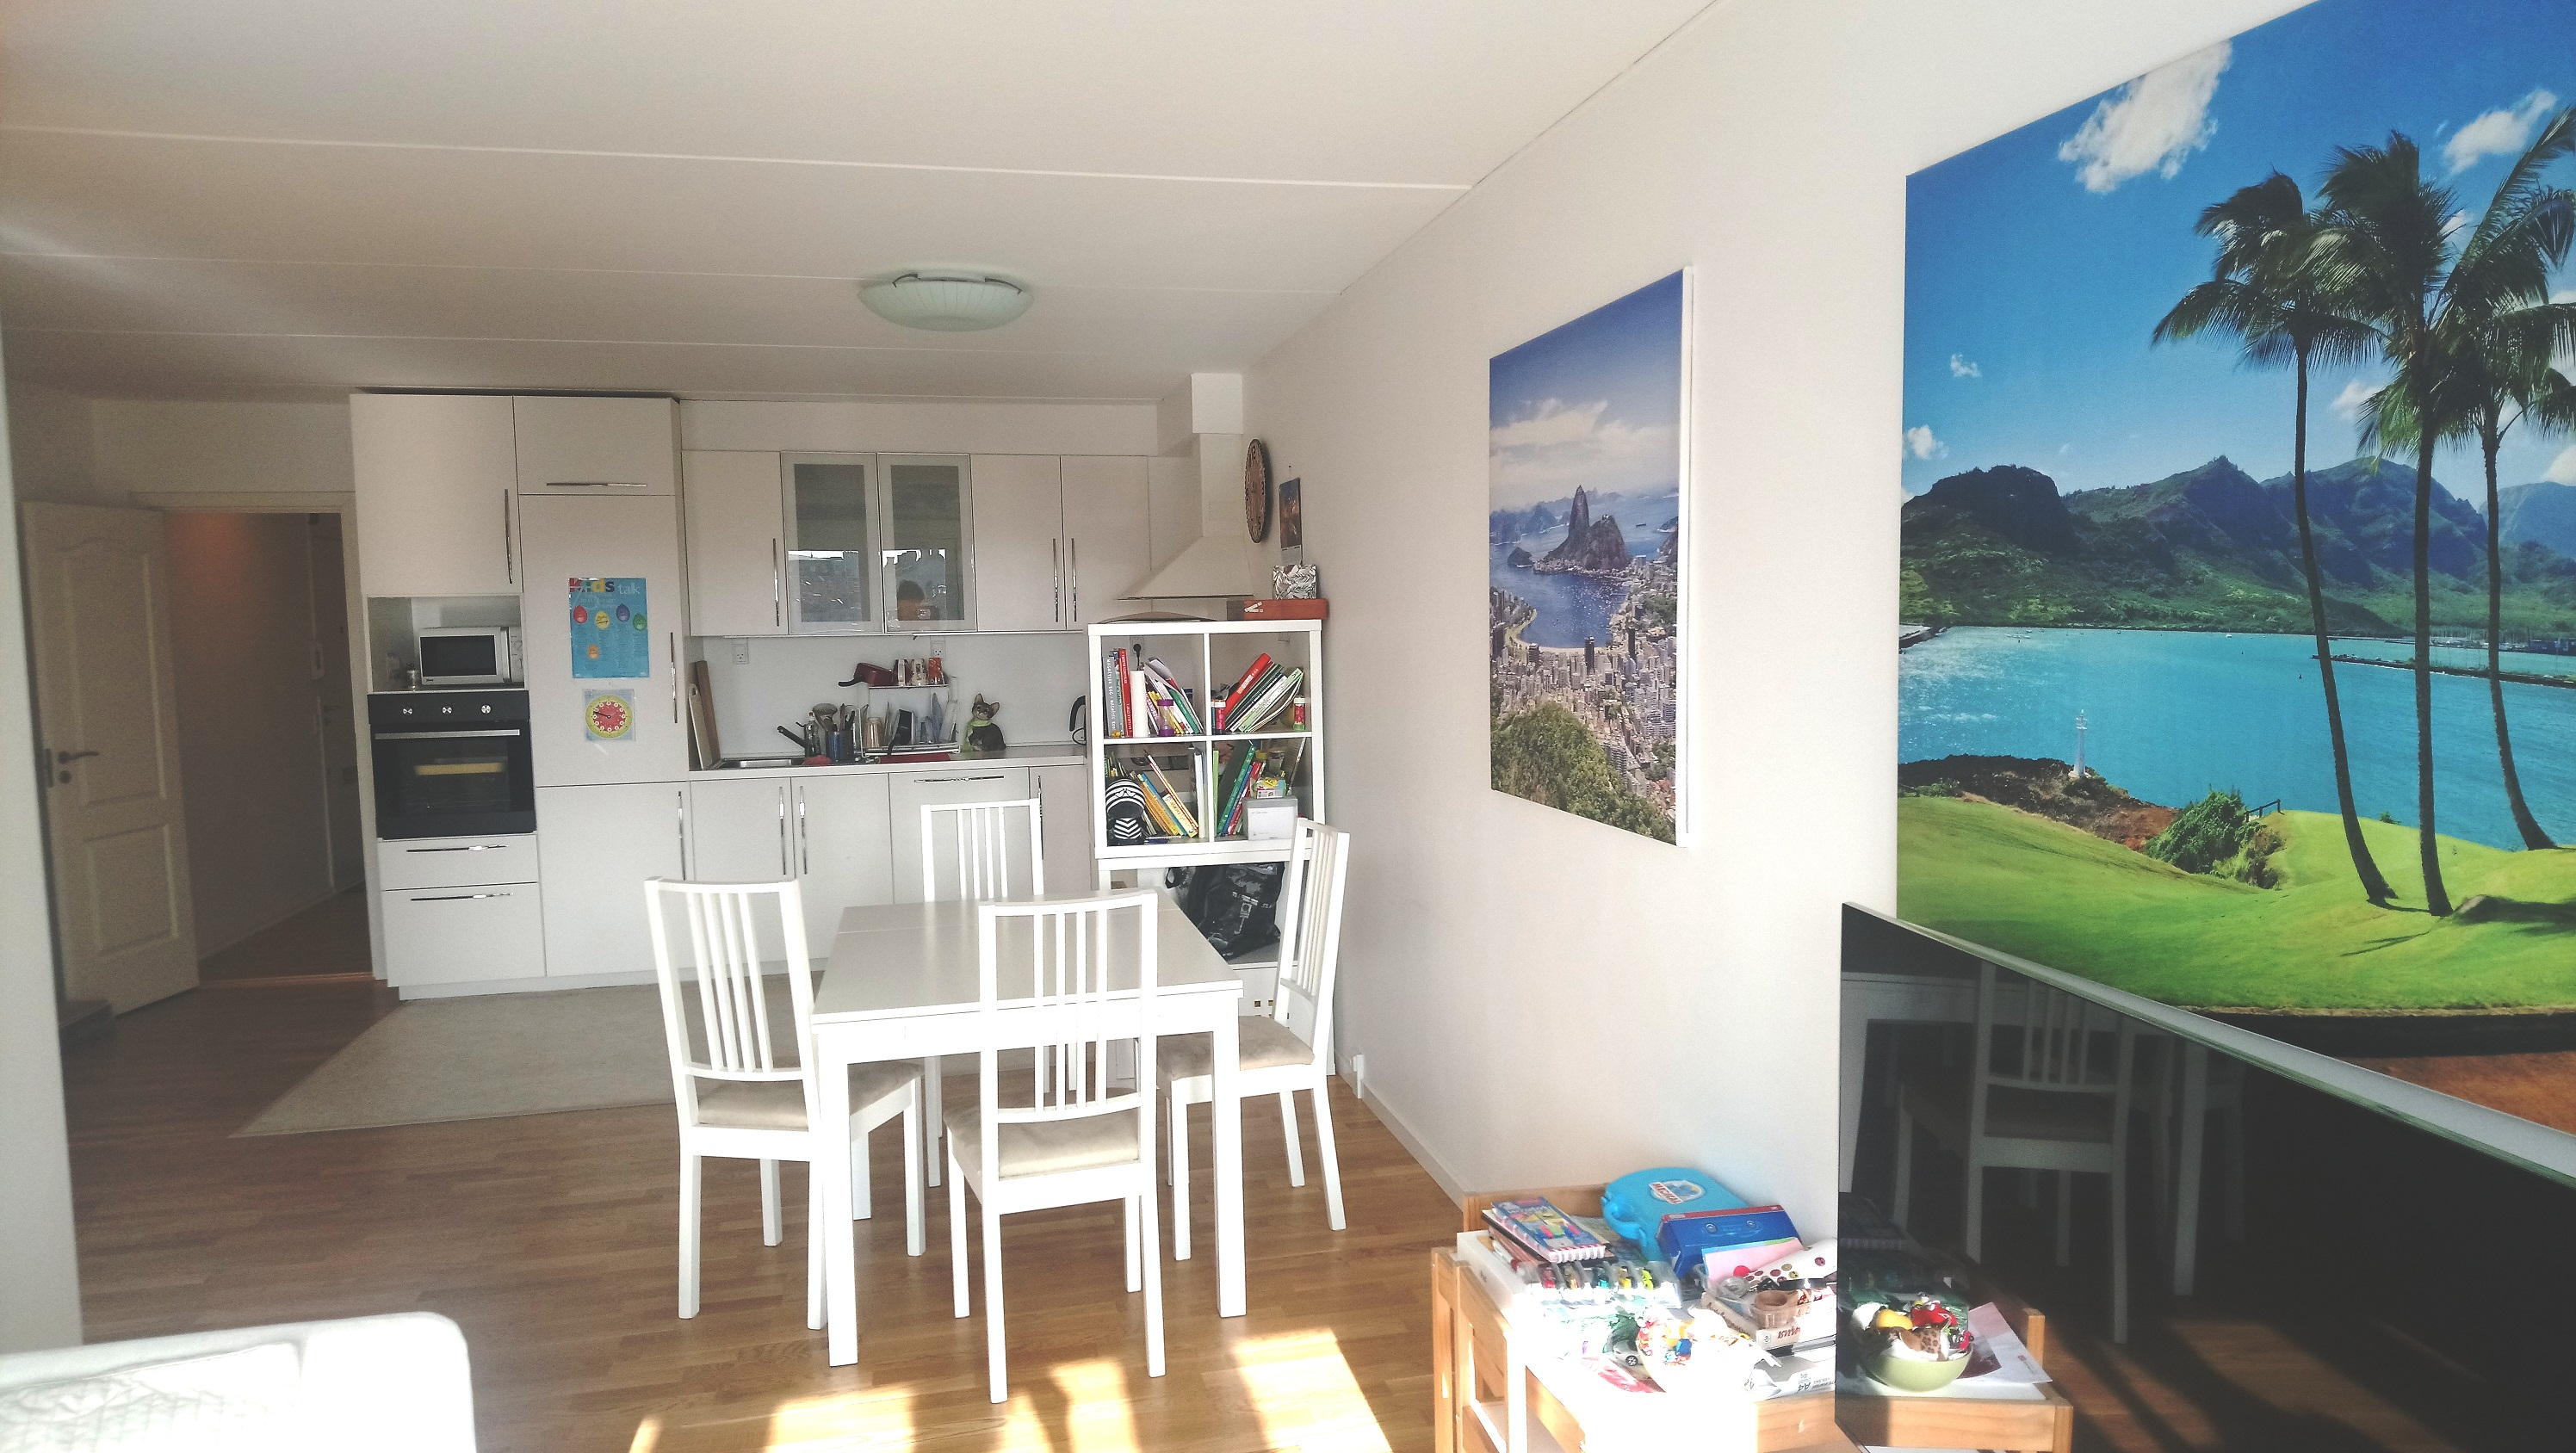 A fully furnished room for rent in a bright and spacious apartment of 93 m2 in Østebro